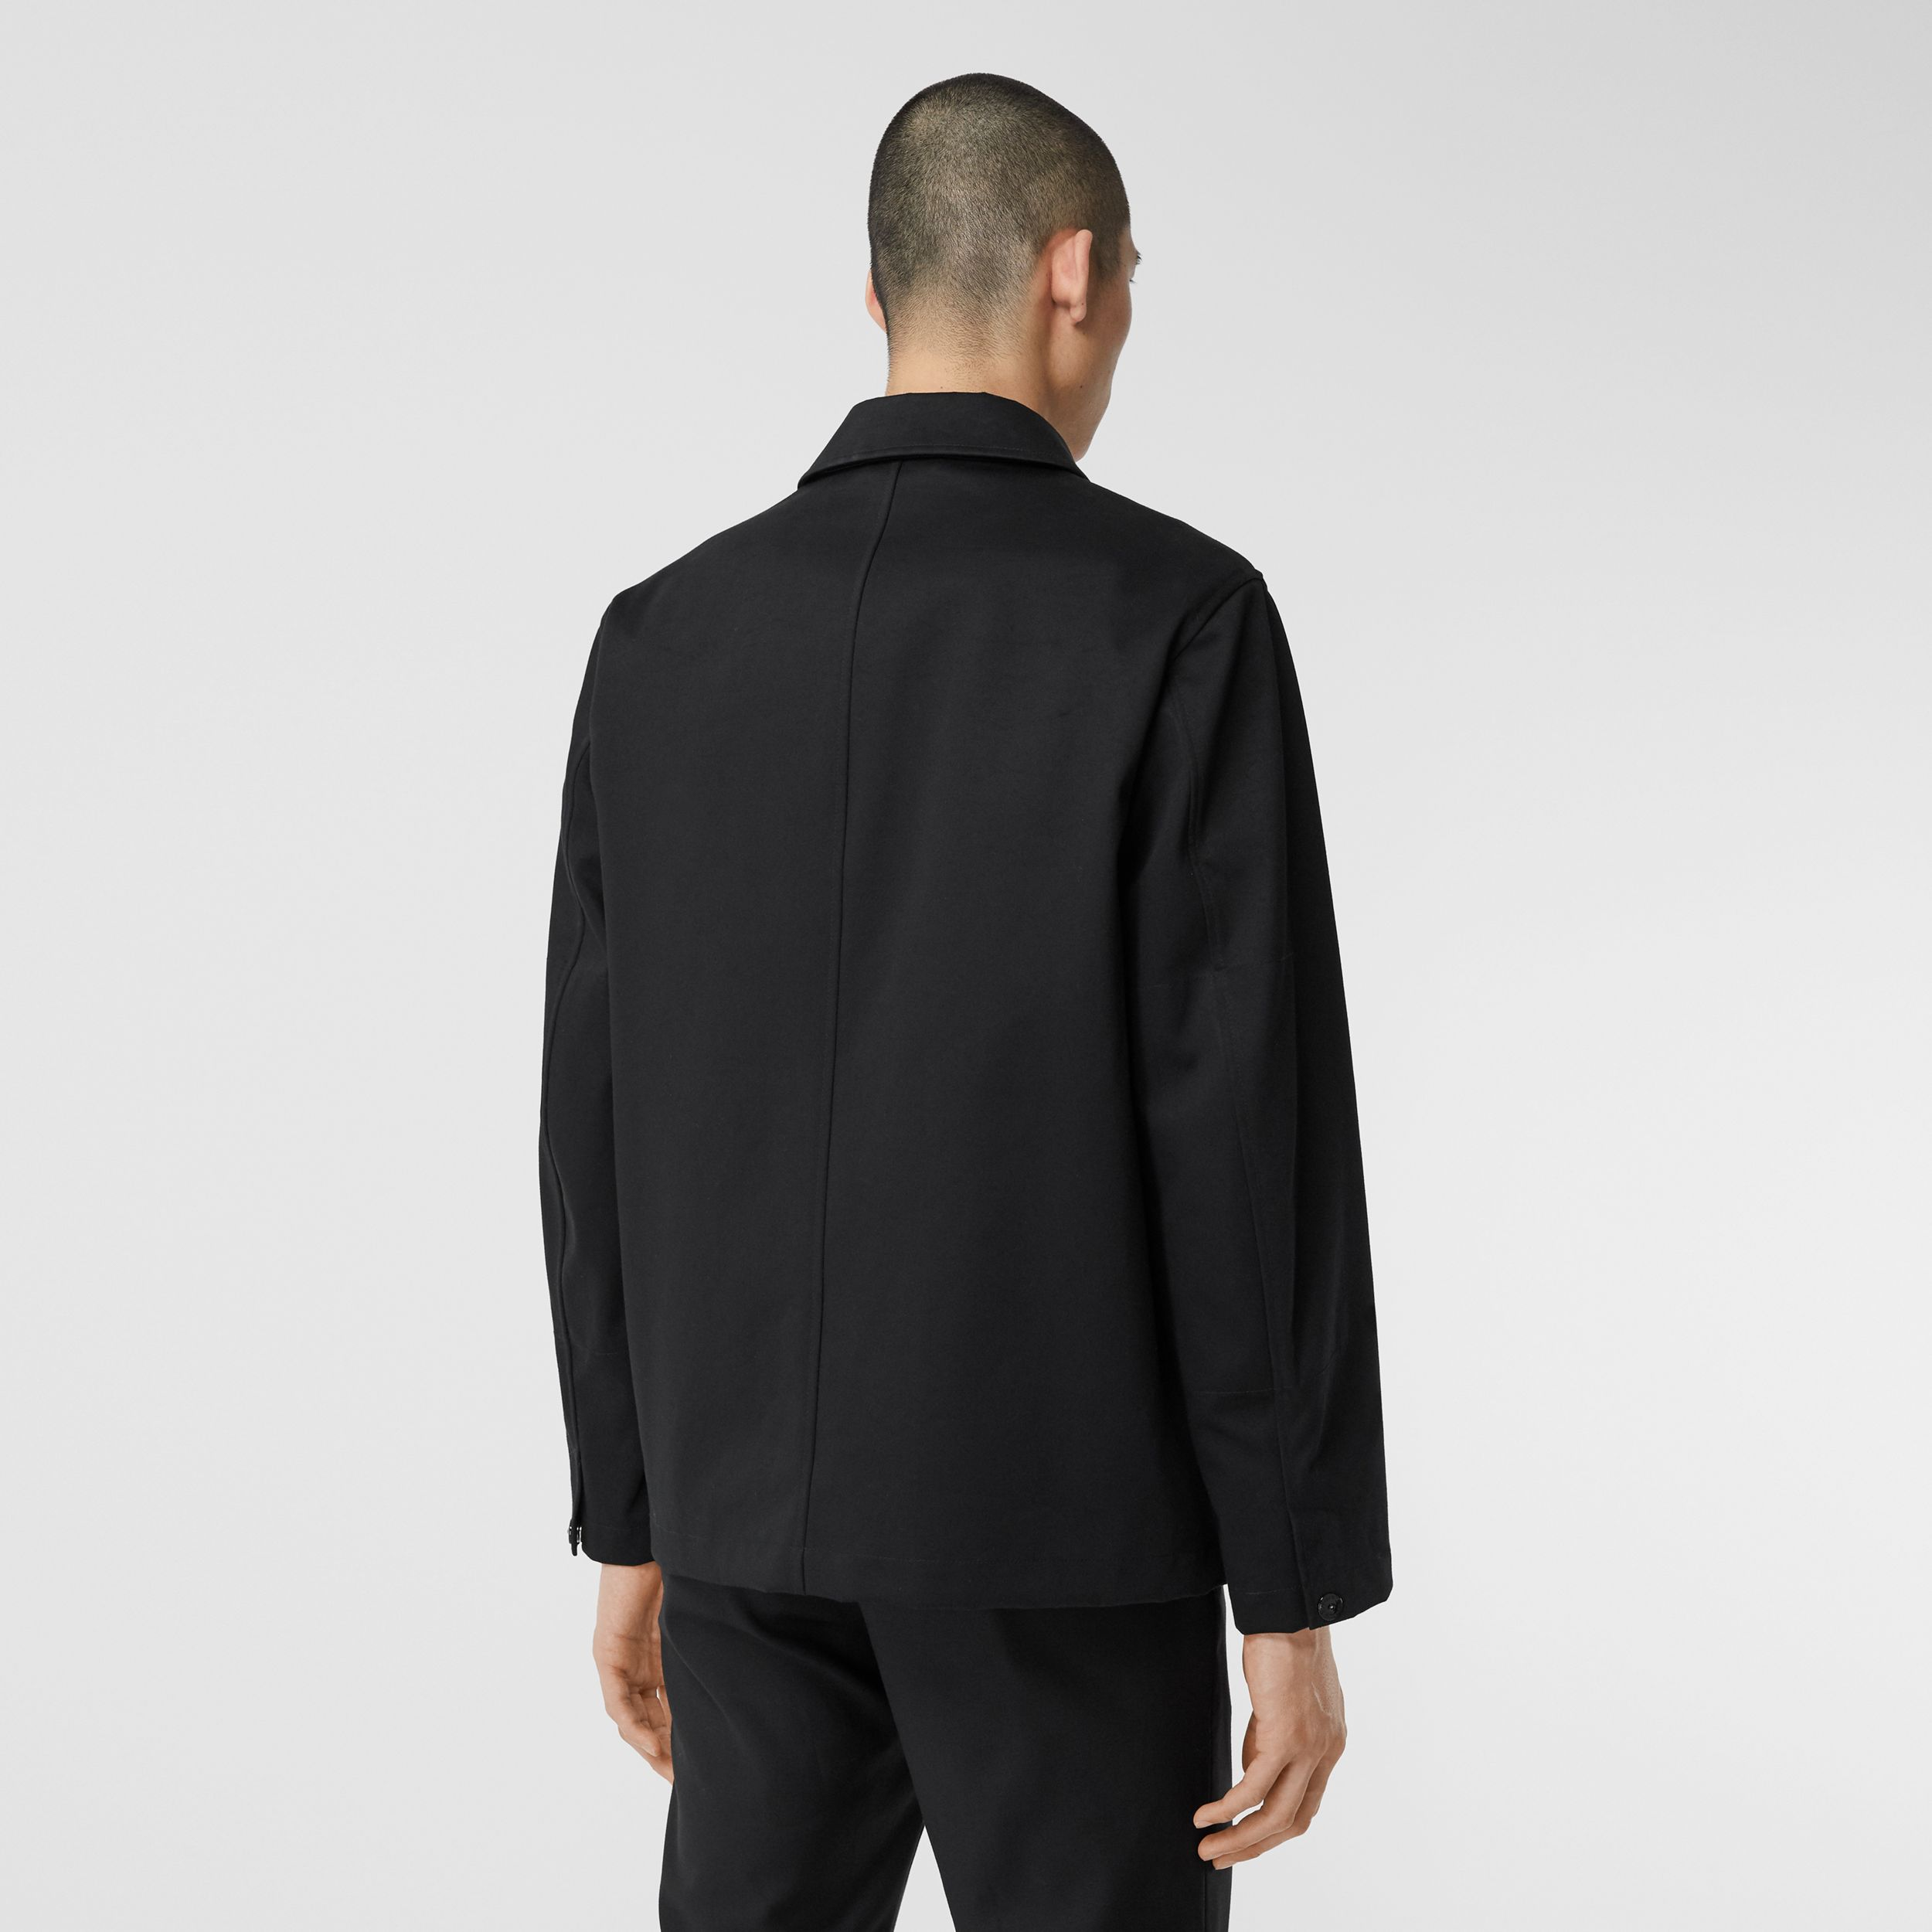 Logo Appliqué Bonded Cotton Sateen Jacket in Black - Men | Burberry - 3